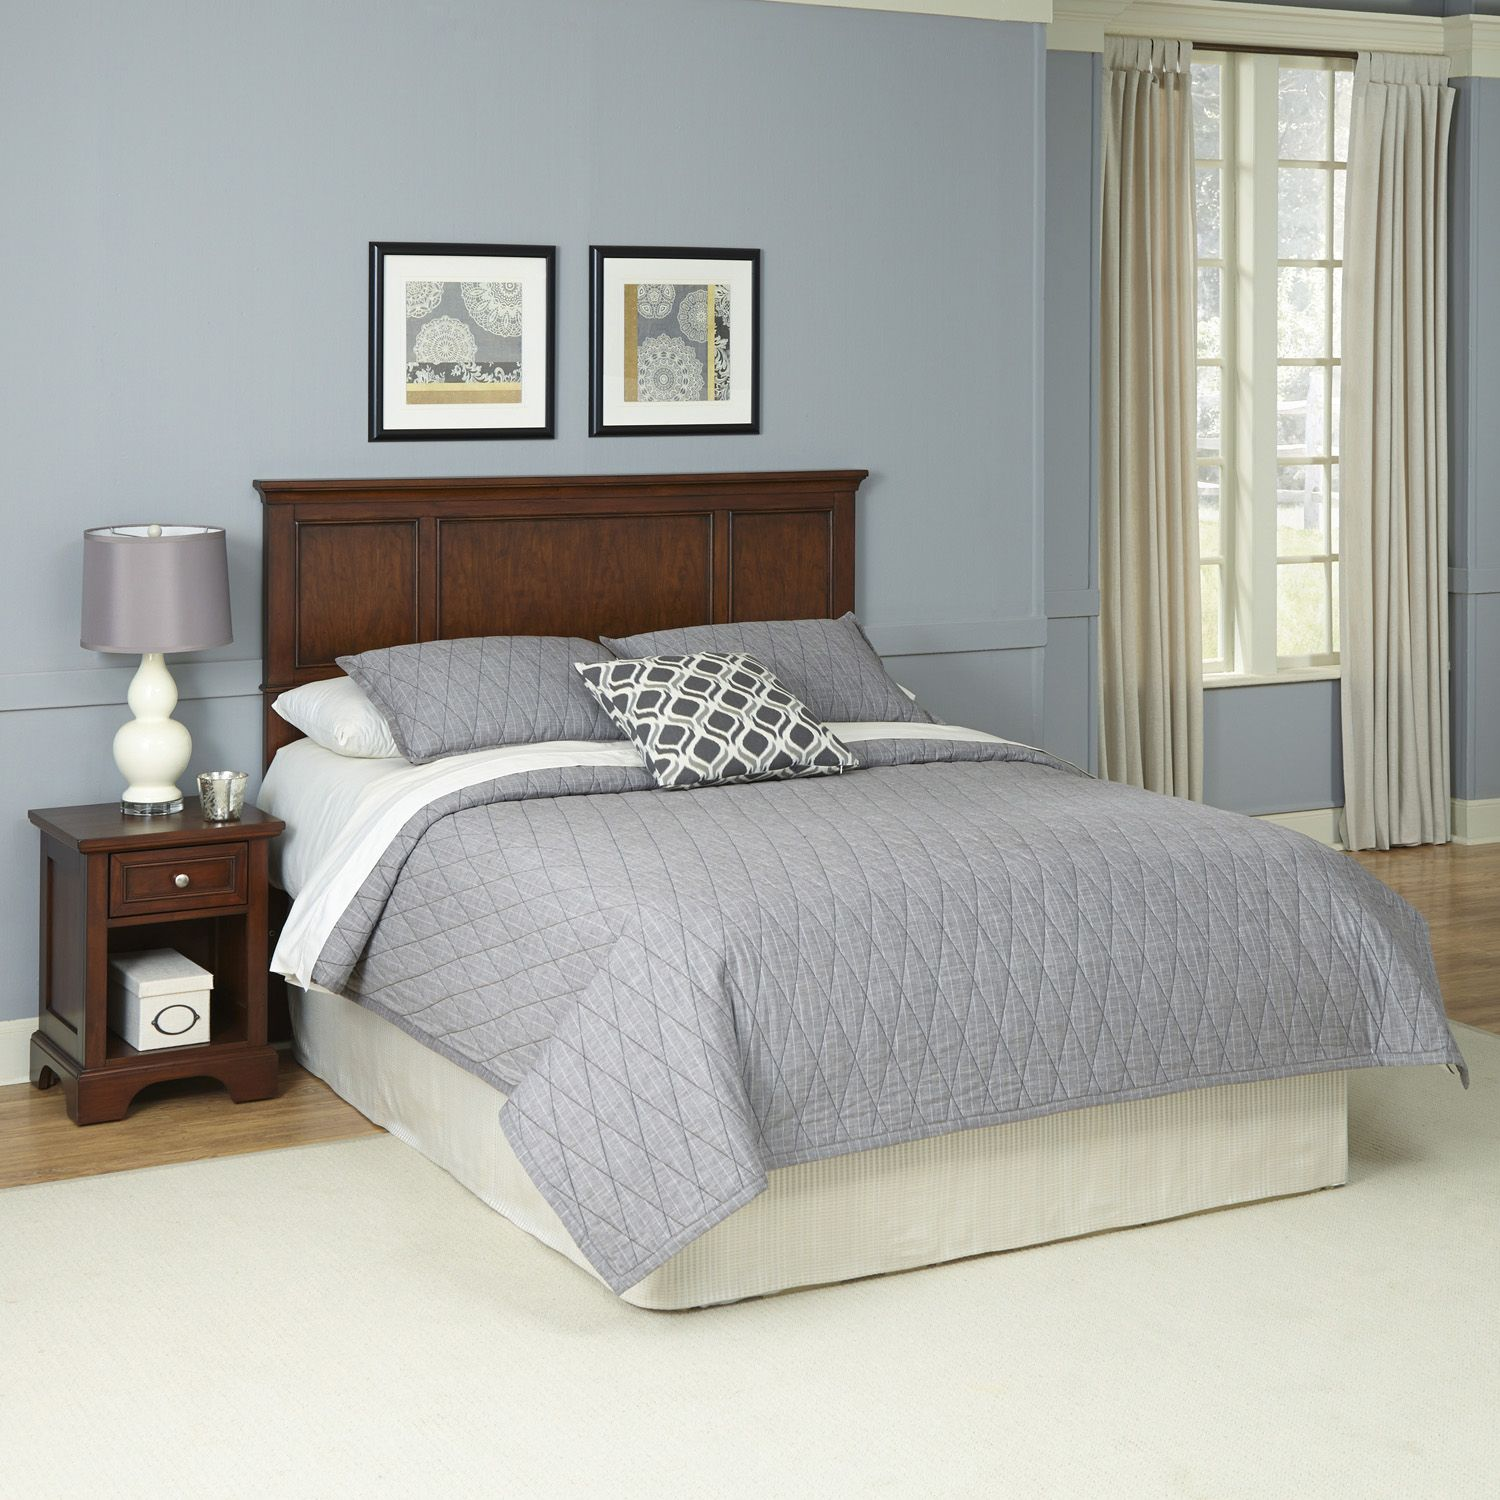 Popular Home Styles piece Chesapeake Headboard and Nightstand Set